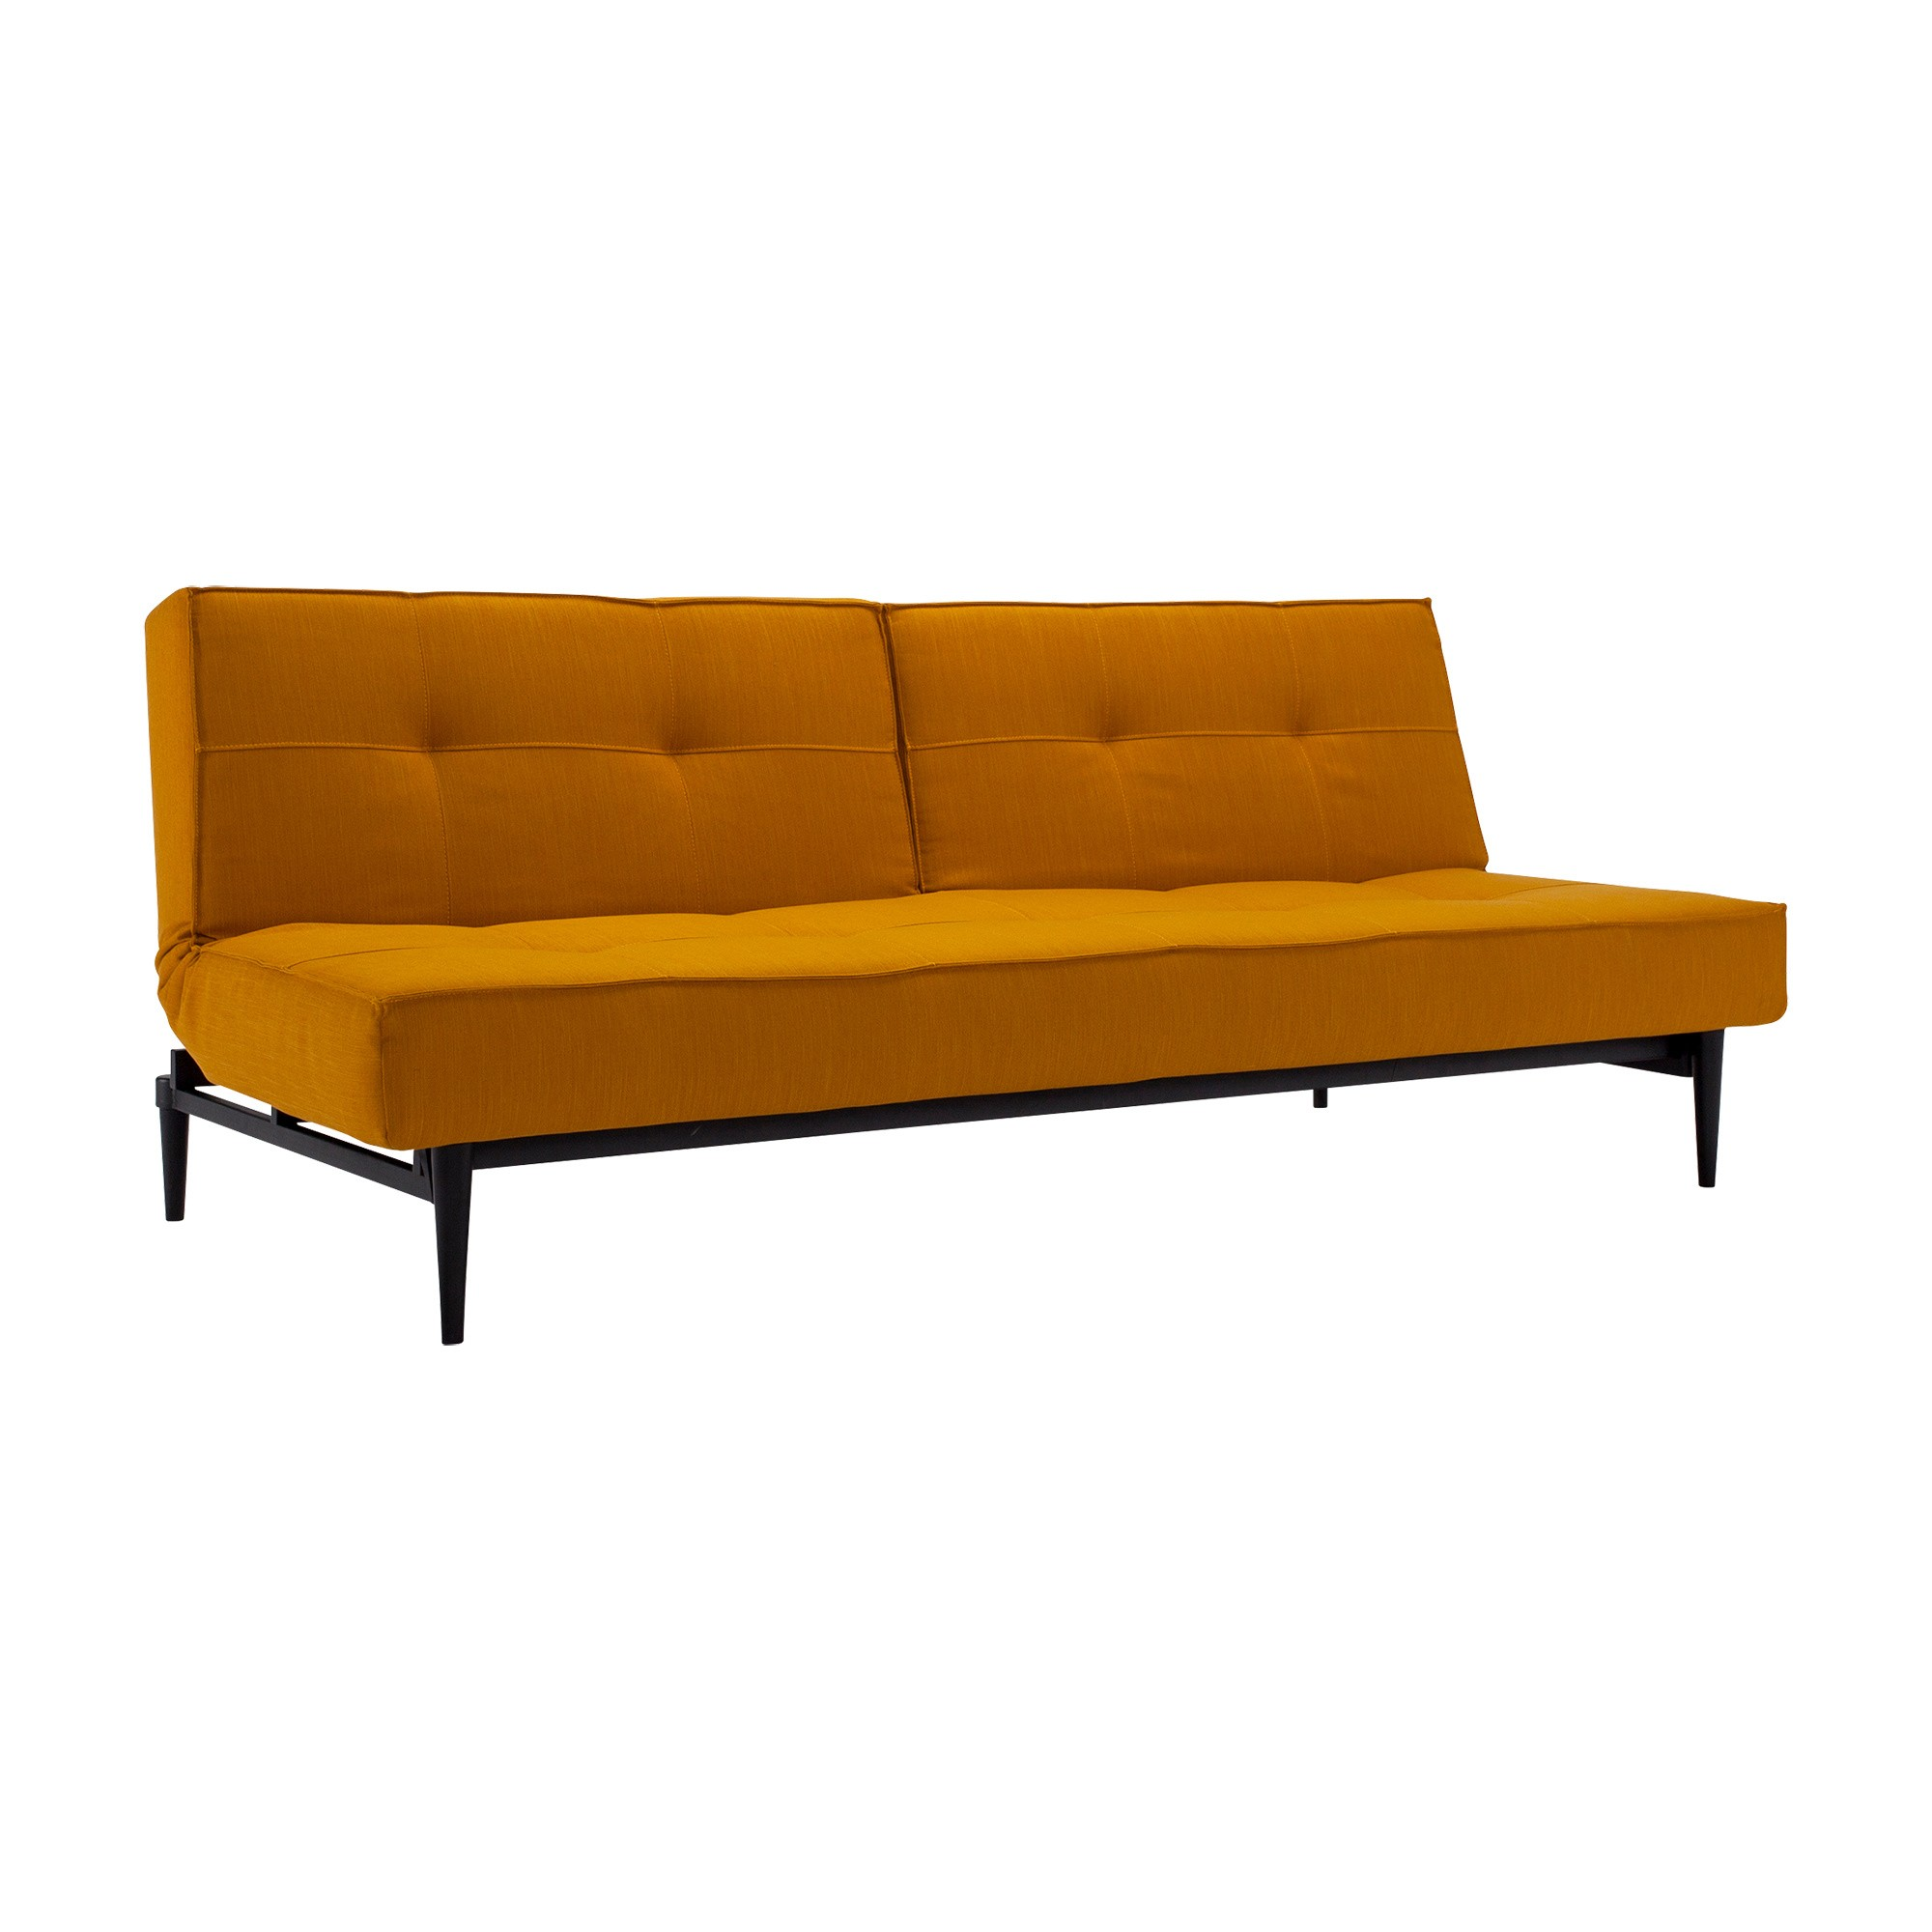 Yellow Schlafsofas Innovation Splitback Styletto Sofa Bed Black Wood 210x91cm | Ambientedirect